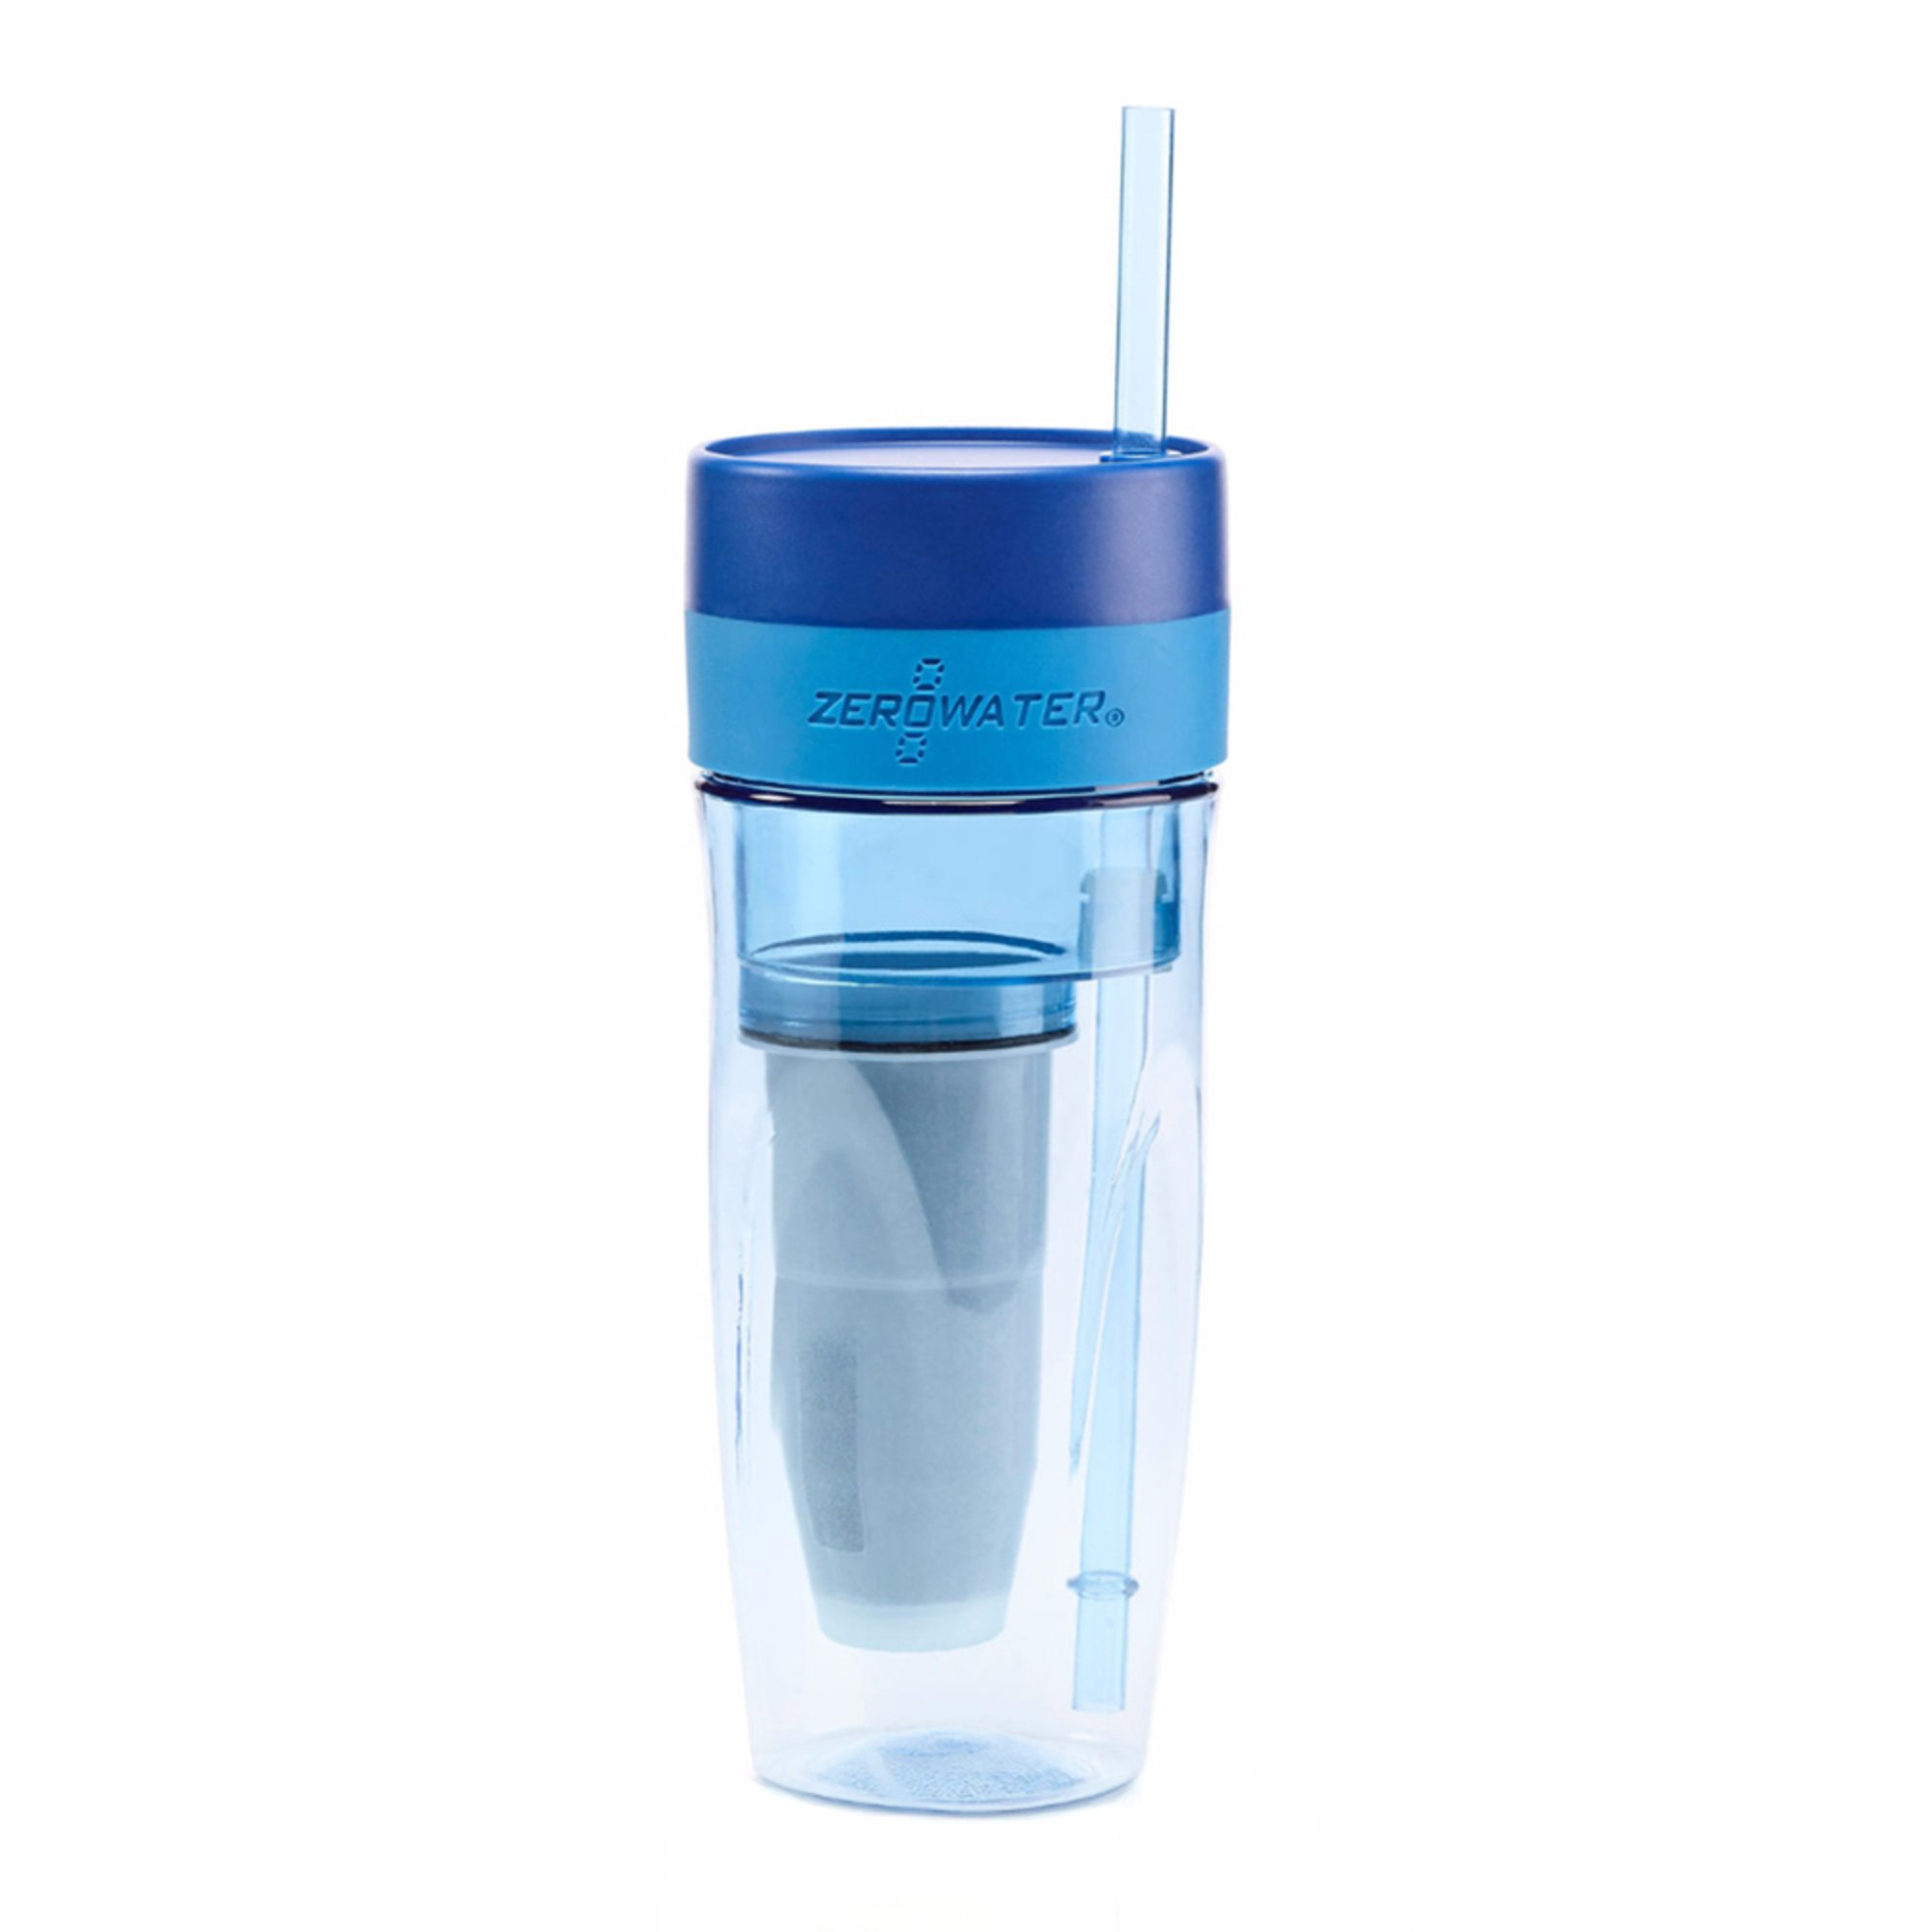 Portable drinking container products are most popular in North America, Western Europe, and South America. You can ensure product safety by selecting from certified suppliers, including with ISO, 33 with Other, and 15 with ISO certification.